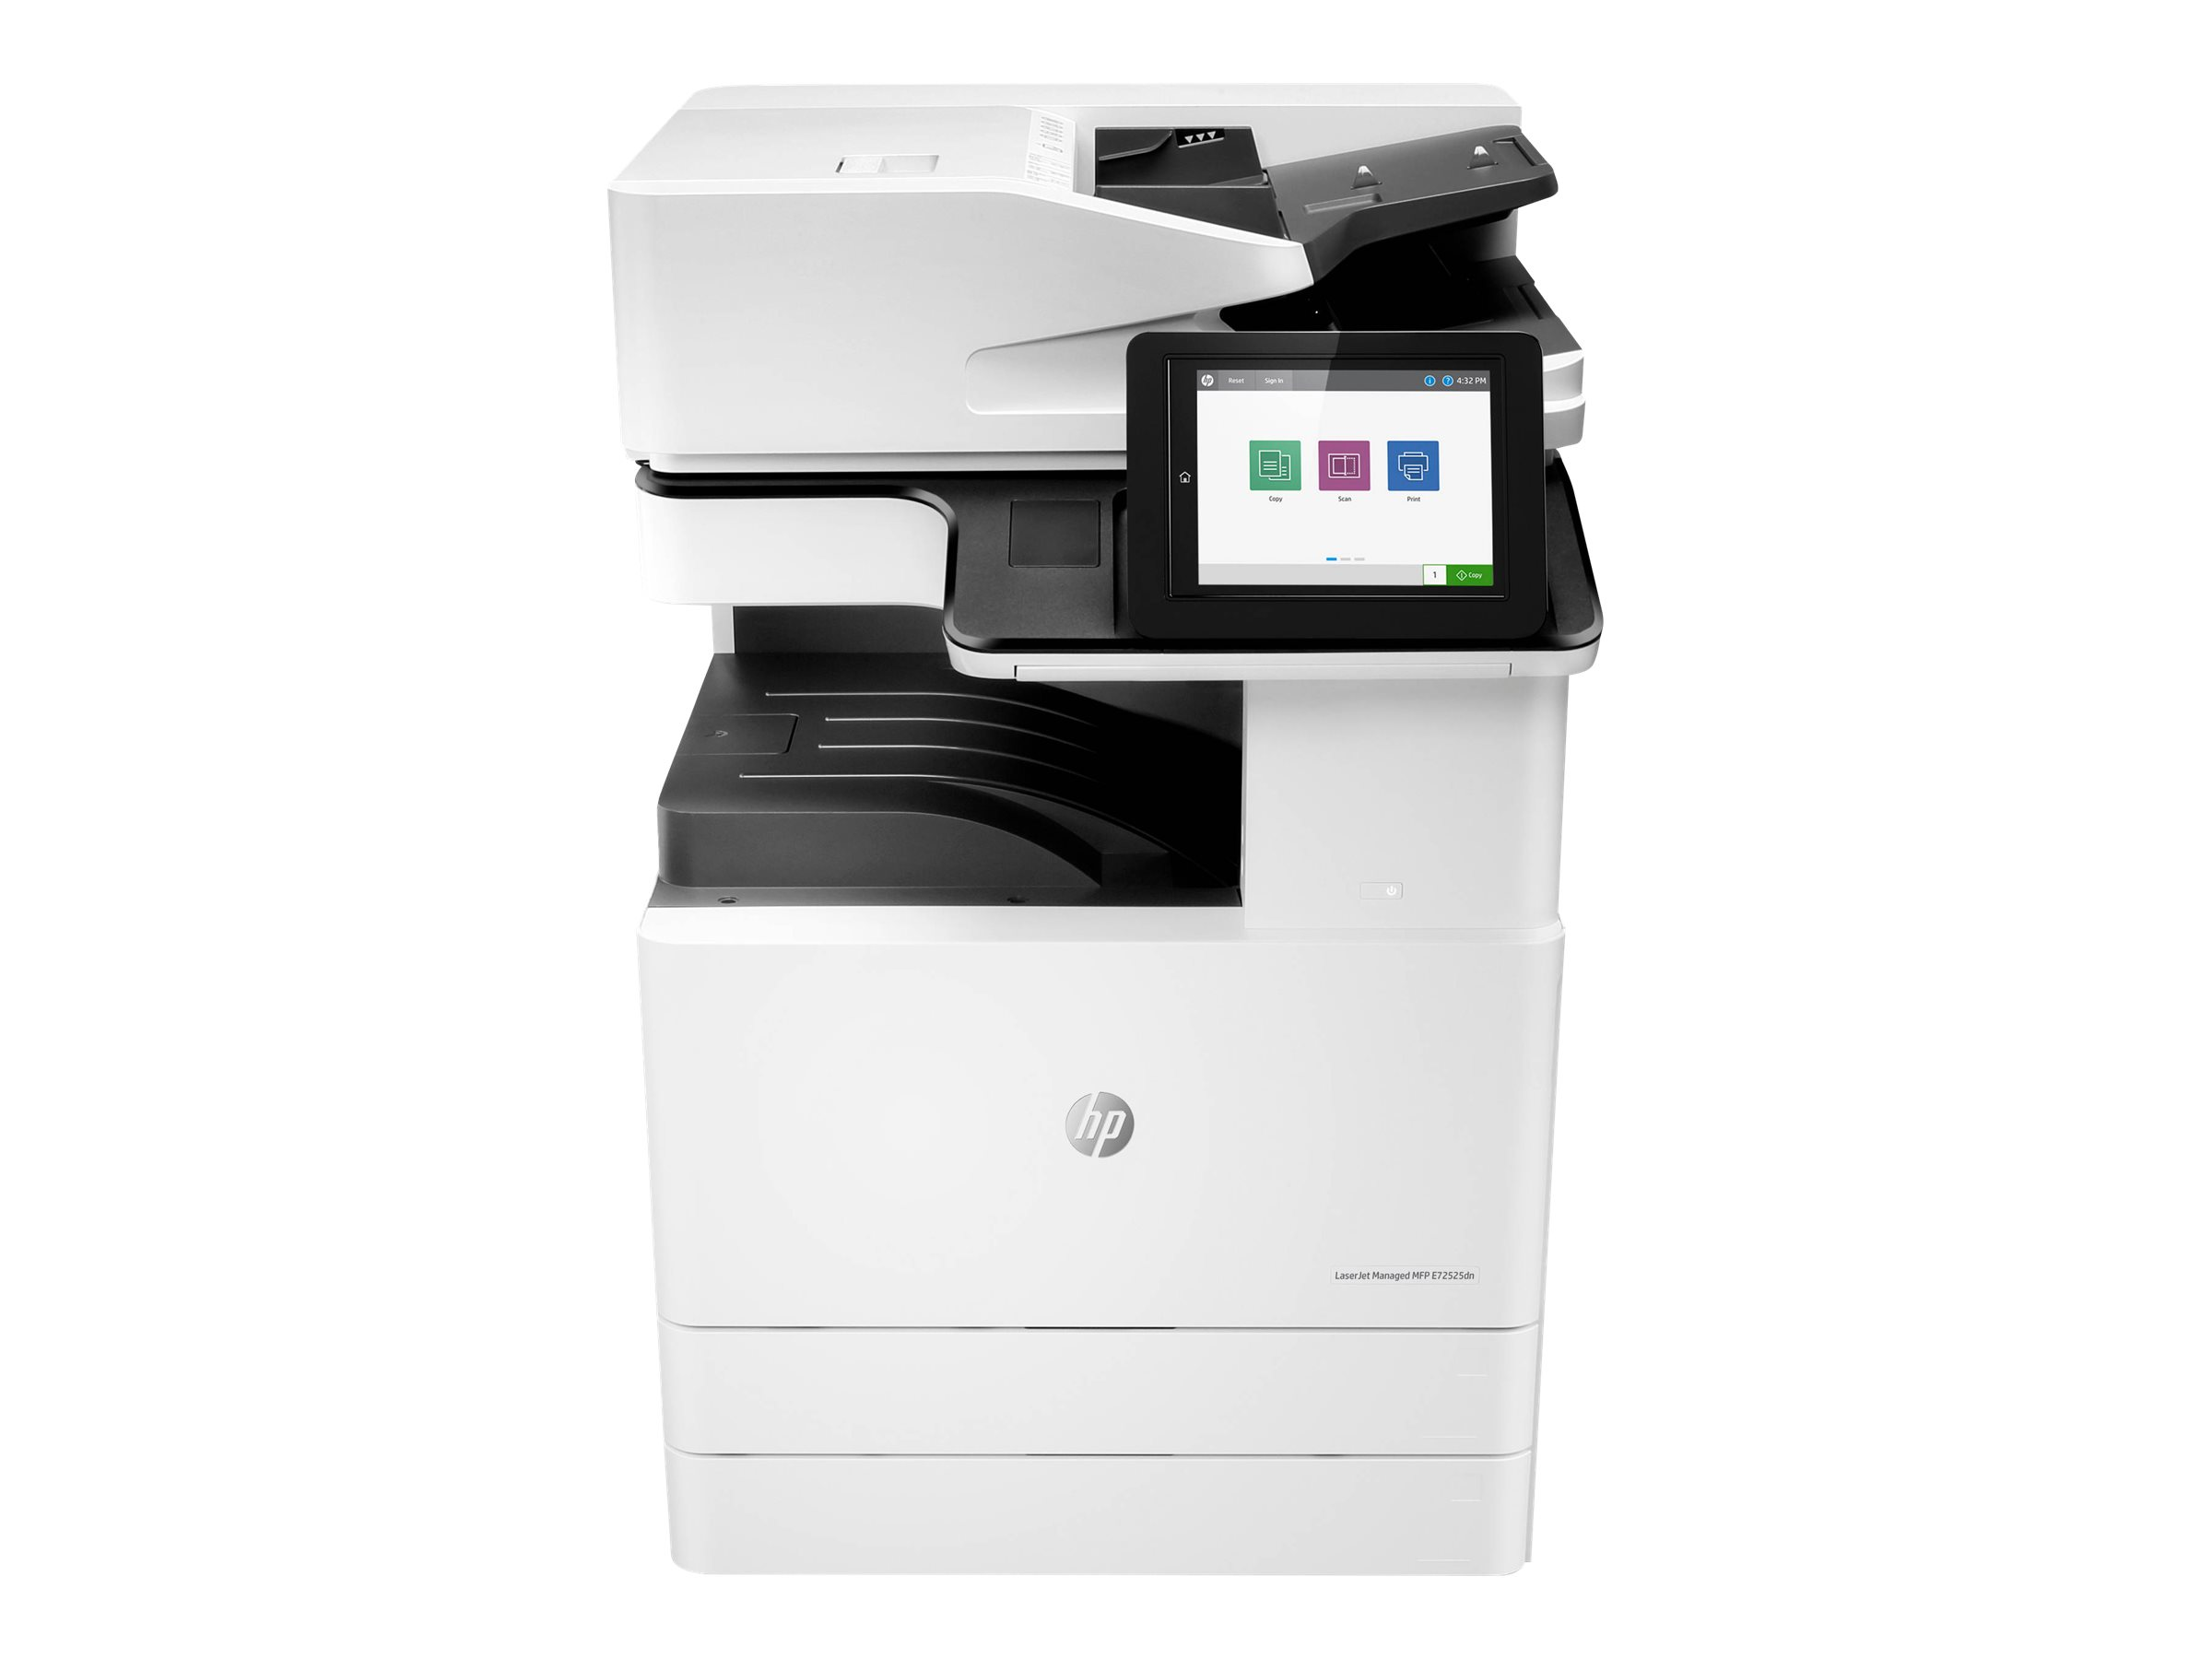 Copieur Color LaserJet Managed Flow MFP HP E77825z - vitesse 25ppm vue avant